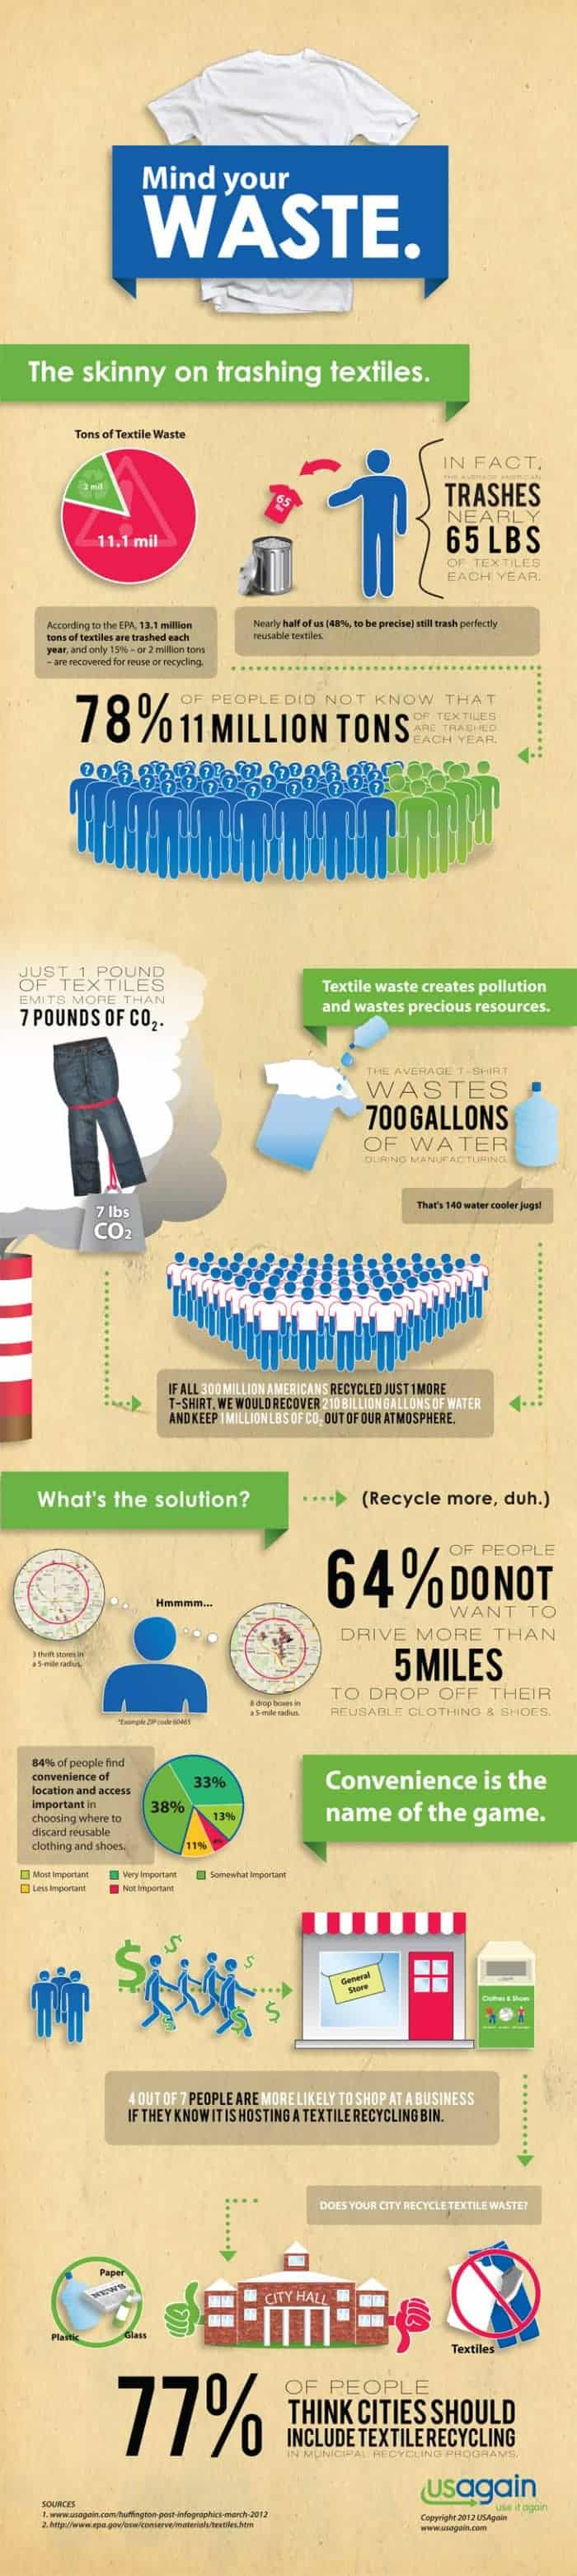 mind-your-waste-infographic-2